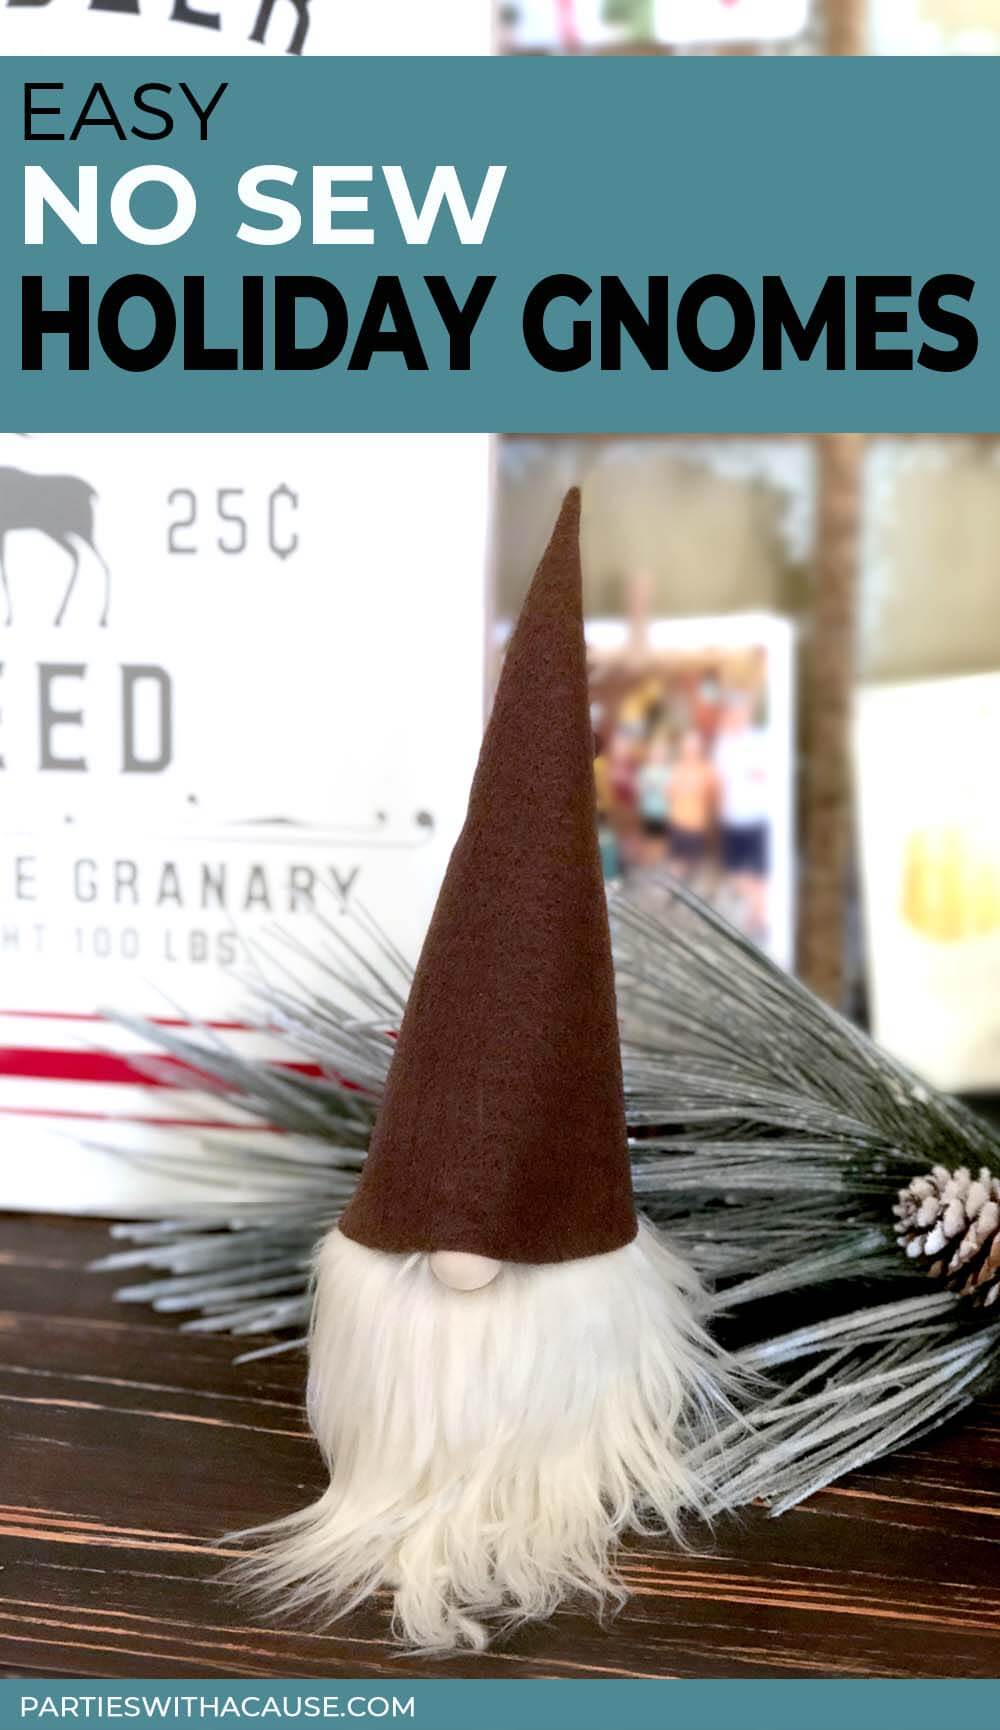 Easy No Sew Holiday Gnomes by Salt Lake Party Stylist